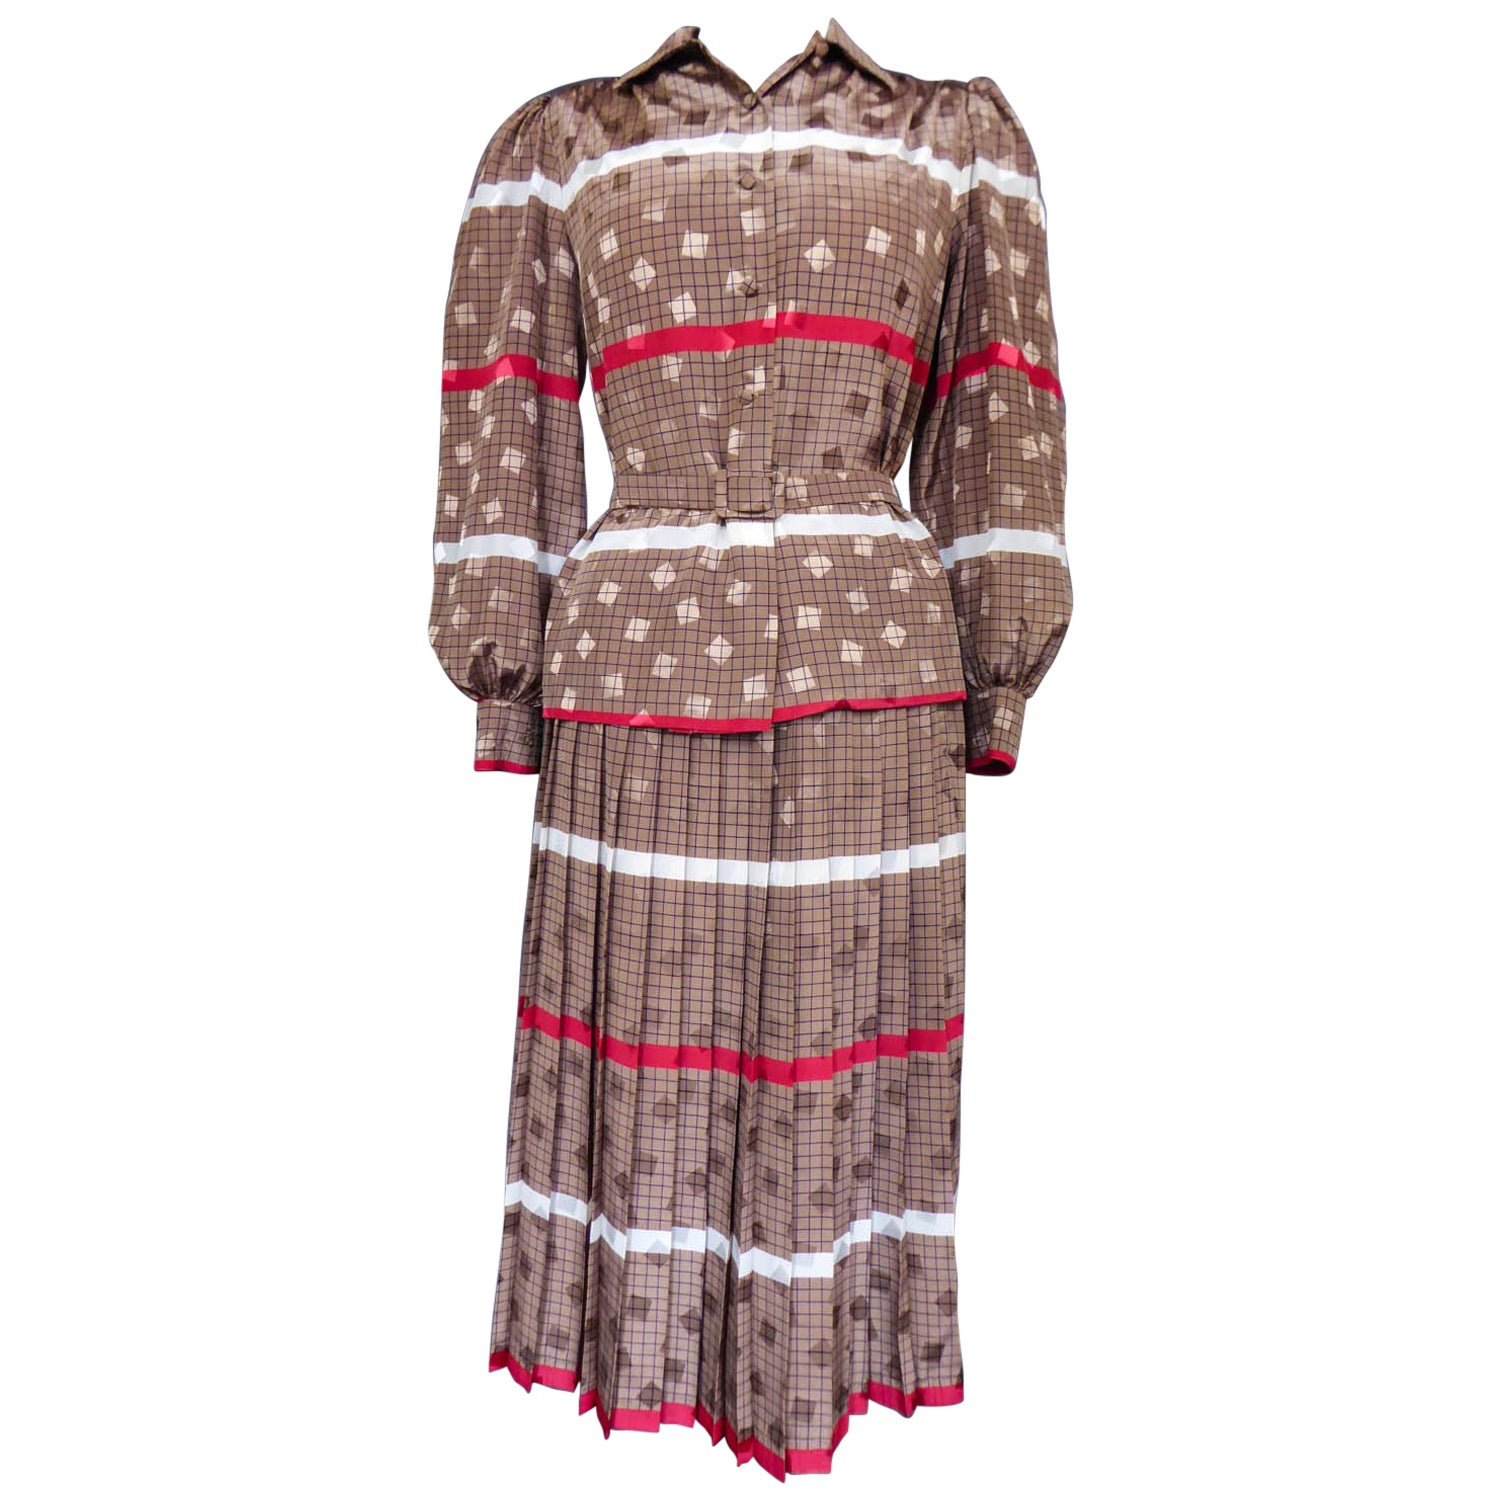 f75797a14c French Blouse and Pleated Skirt Cacharel (Attributed to) Circa 1980 For  Sale at 1stdibs